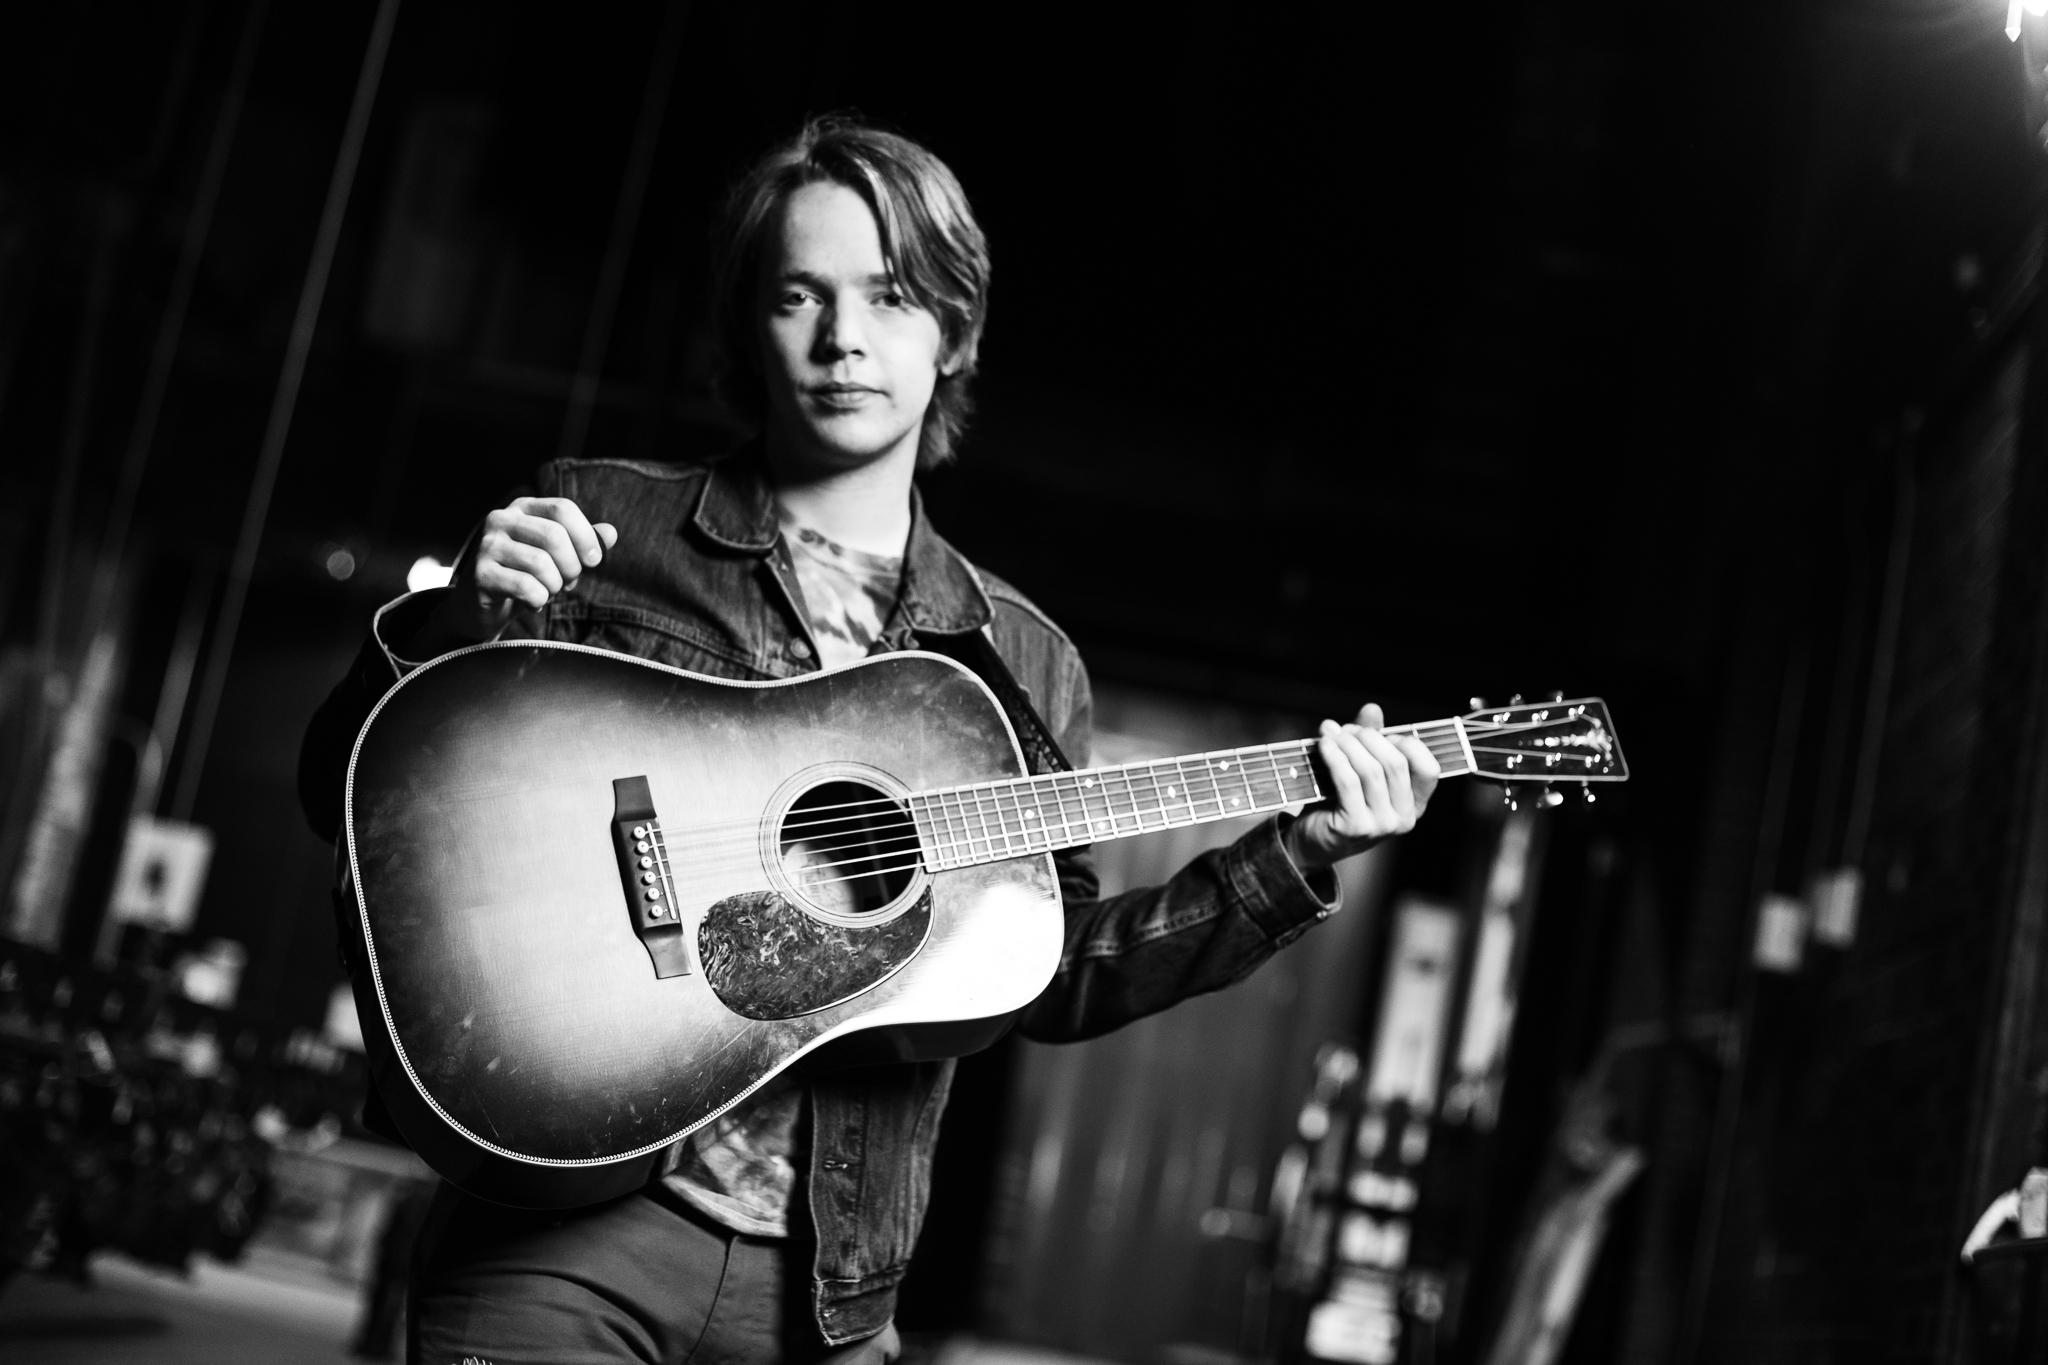 MMS Presents: An Interview With Nashville's Bluegrass Wunderkind Billy Strings